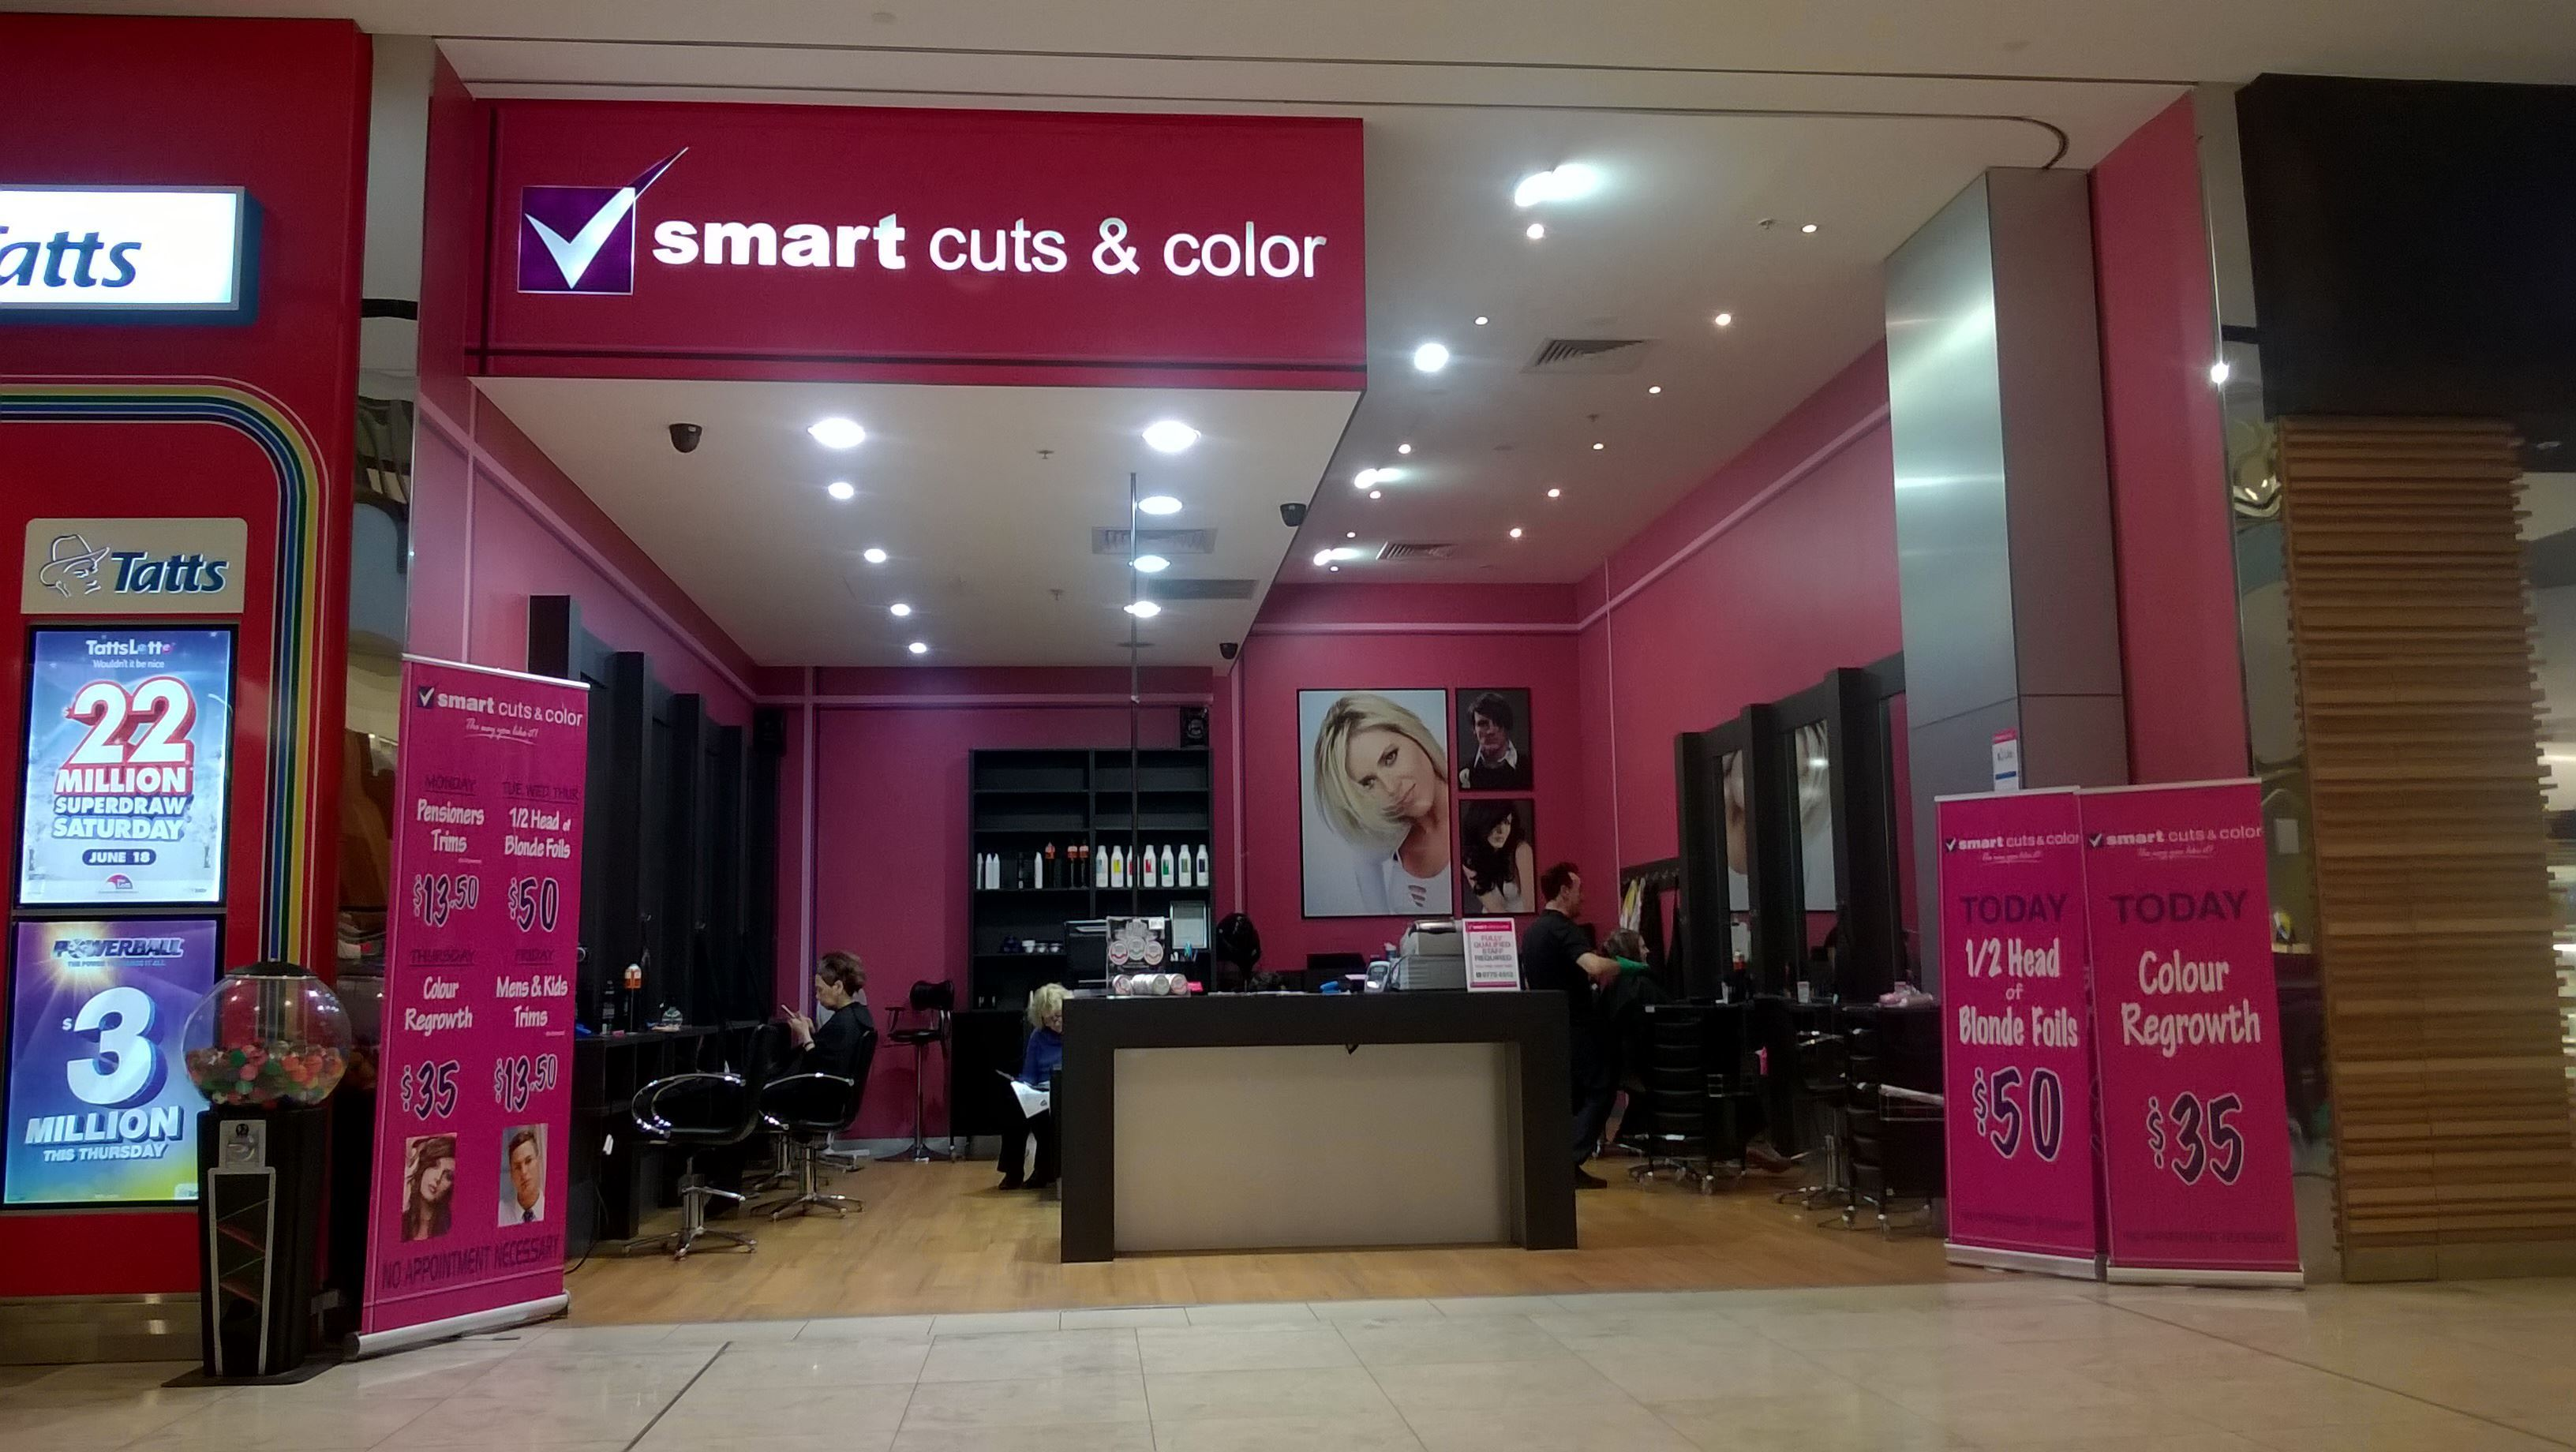 Marvelous Smart Cuts And Color South Yarra Haircuts Hairdresser Short Hairstyles Gunalazisus